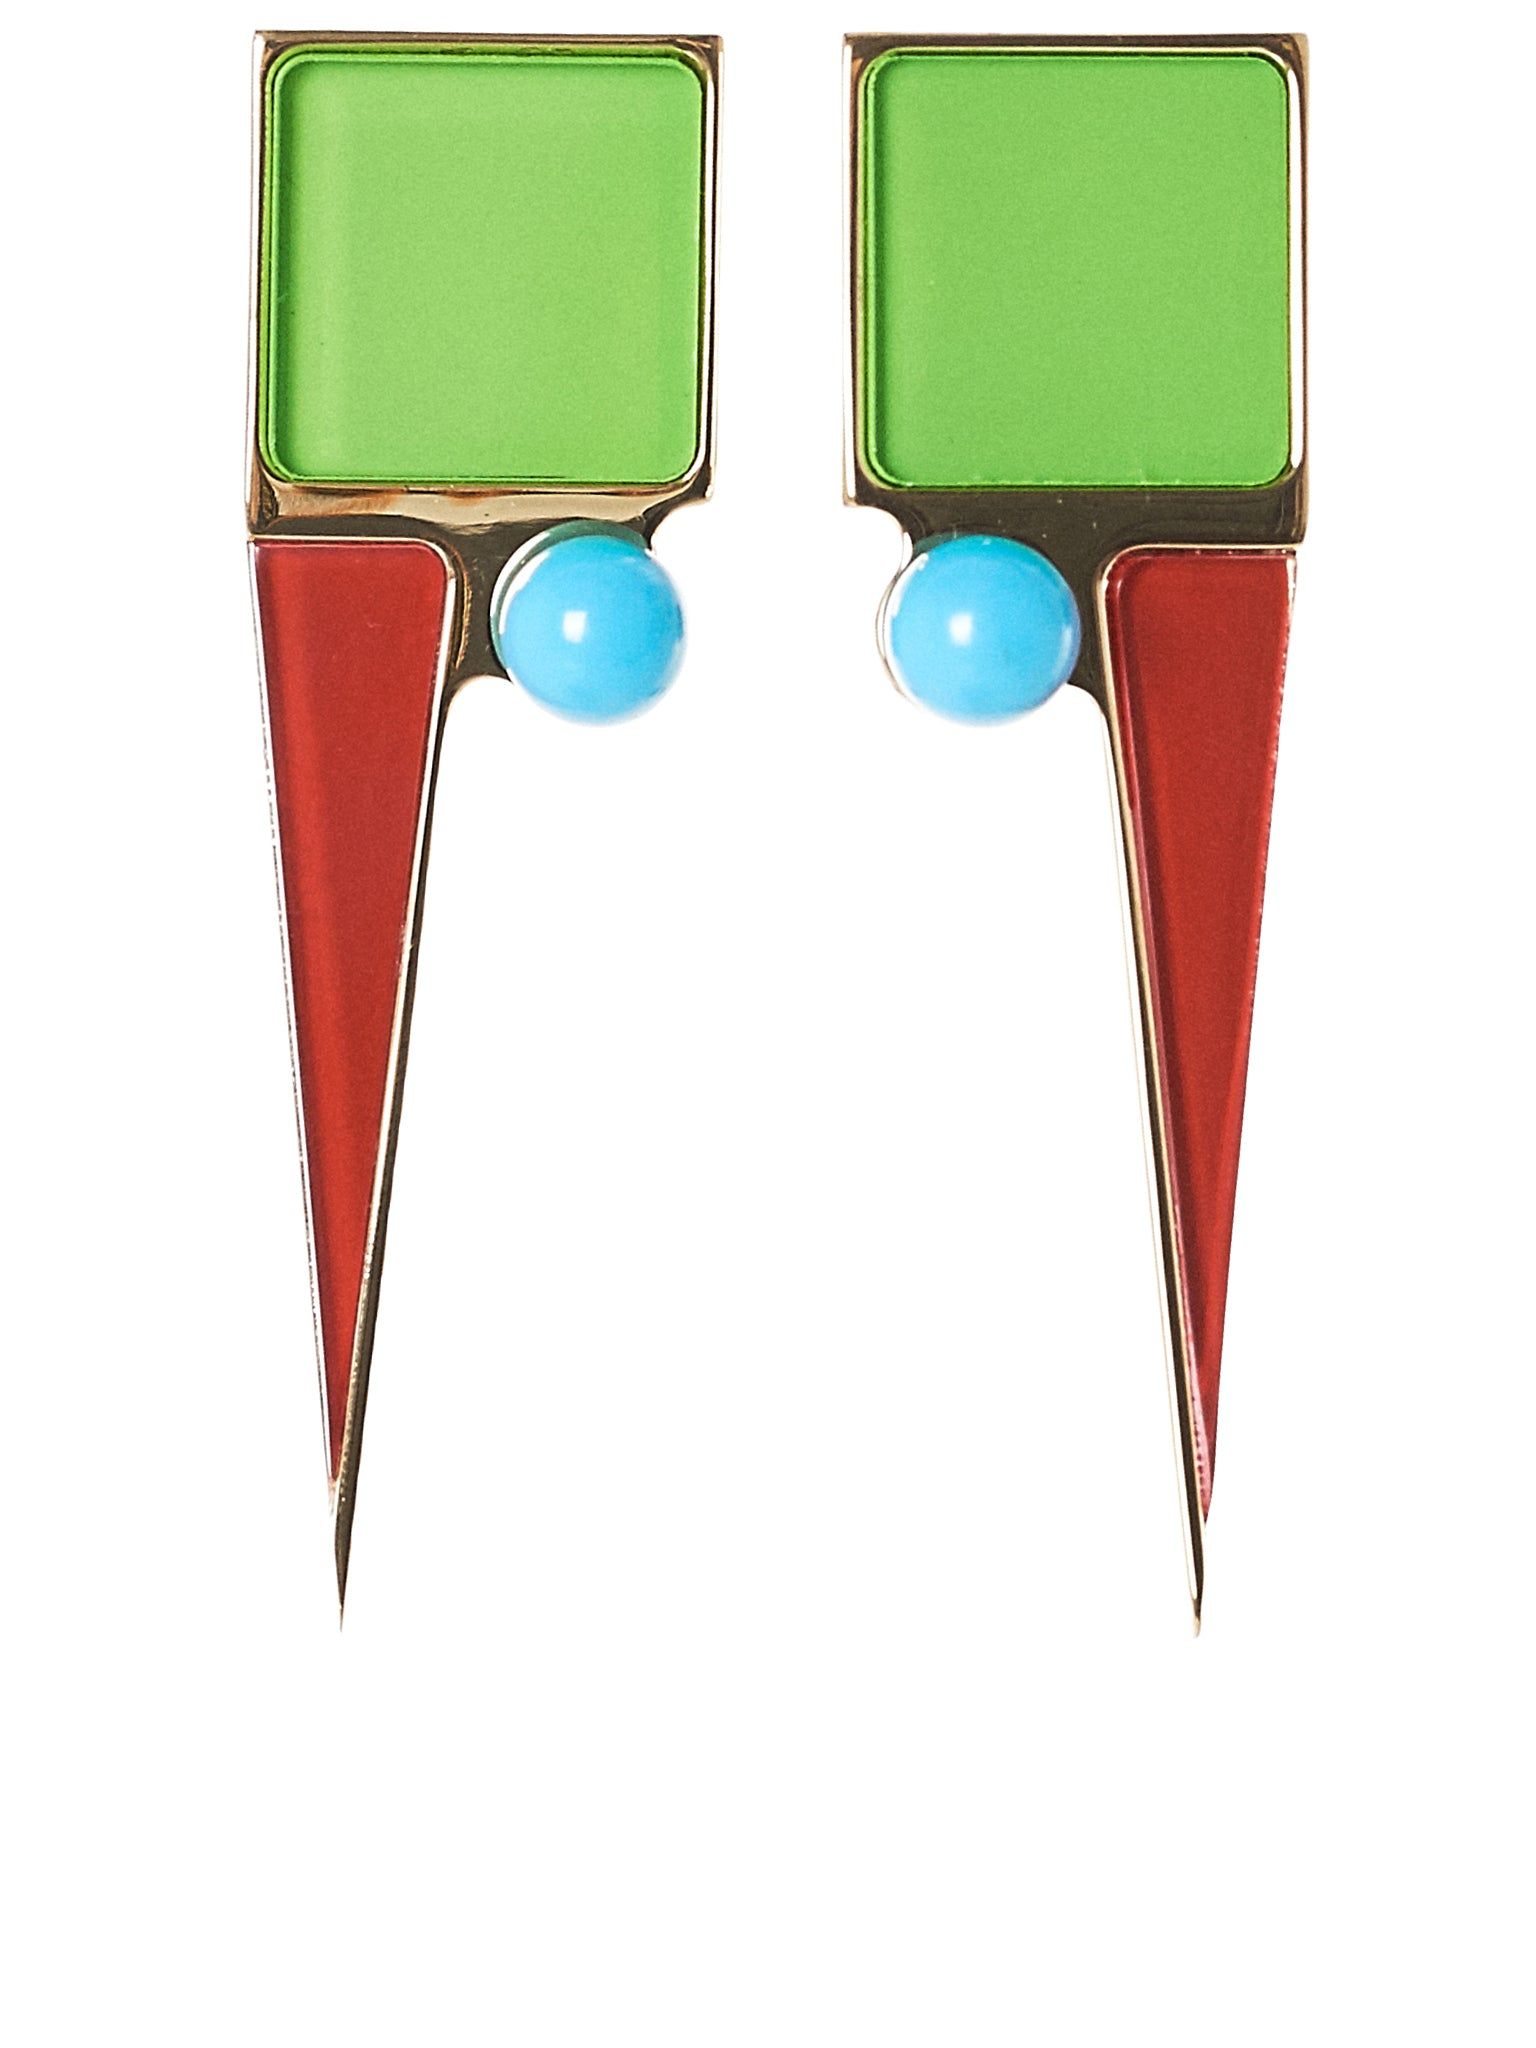 Structured Earrings (ART.61-GREEN-RED-BLUE)